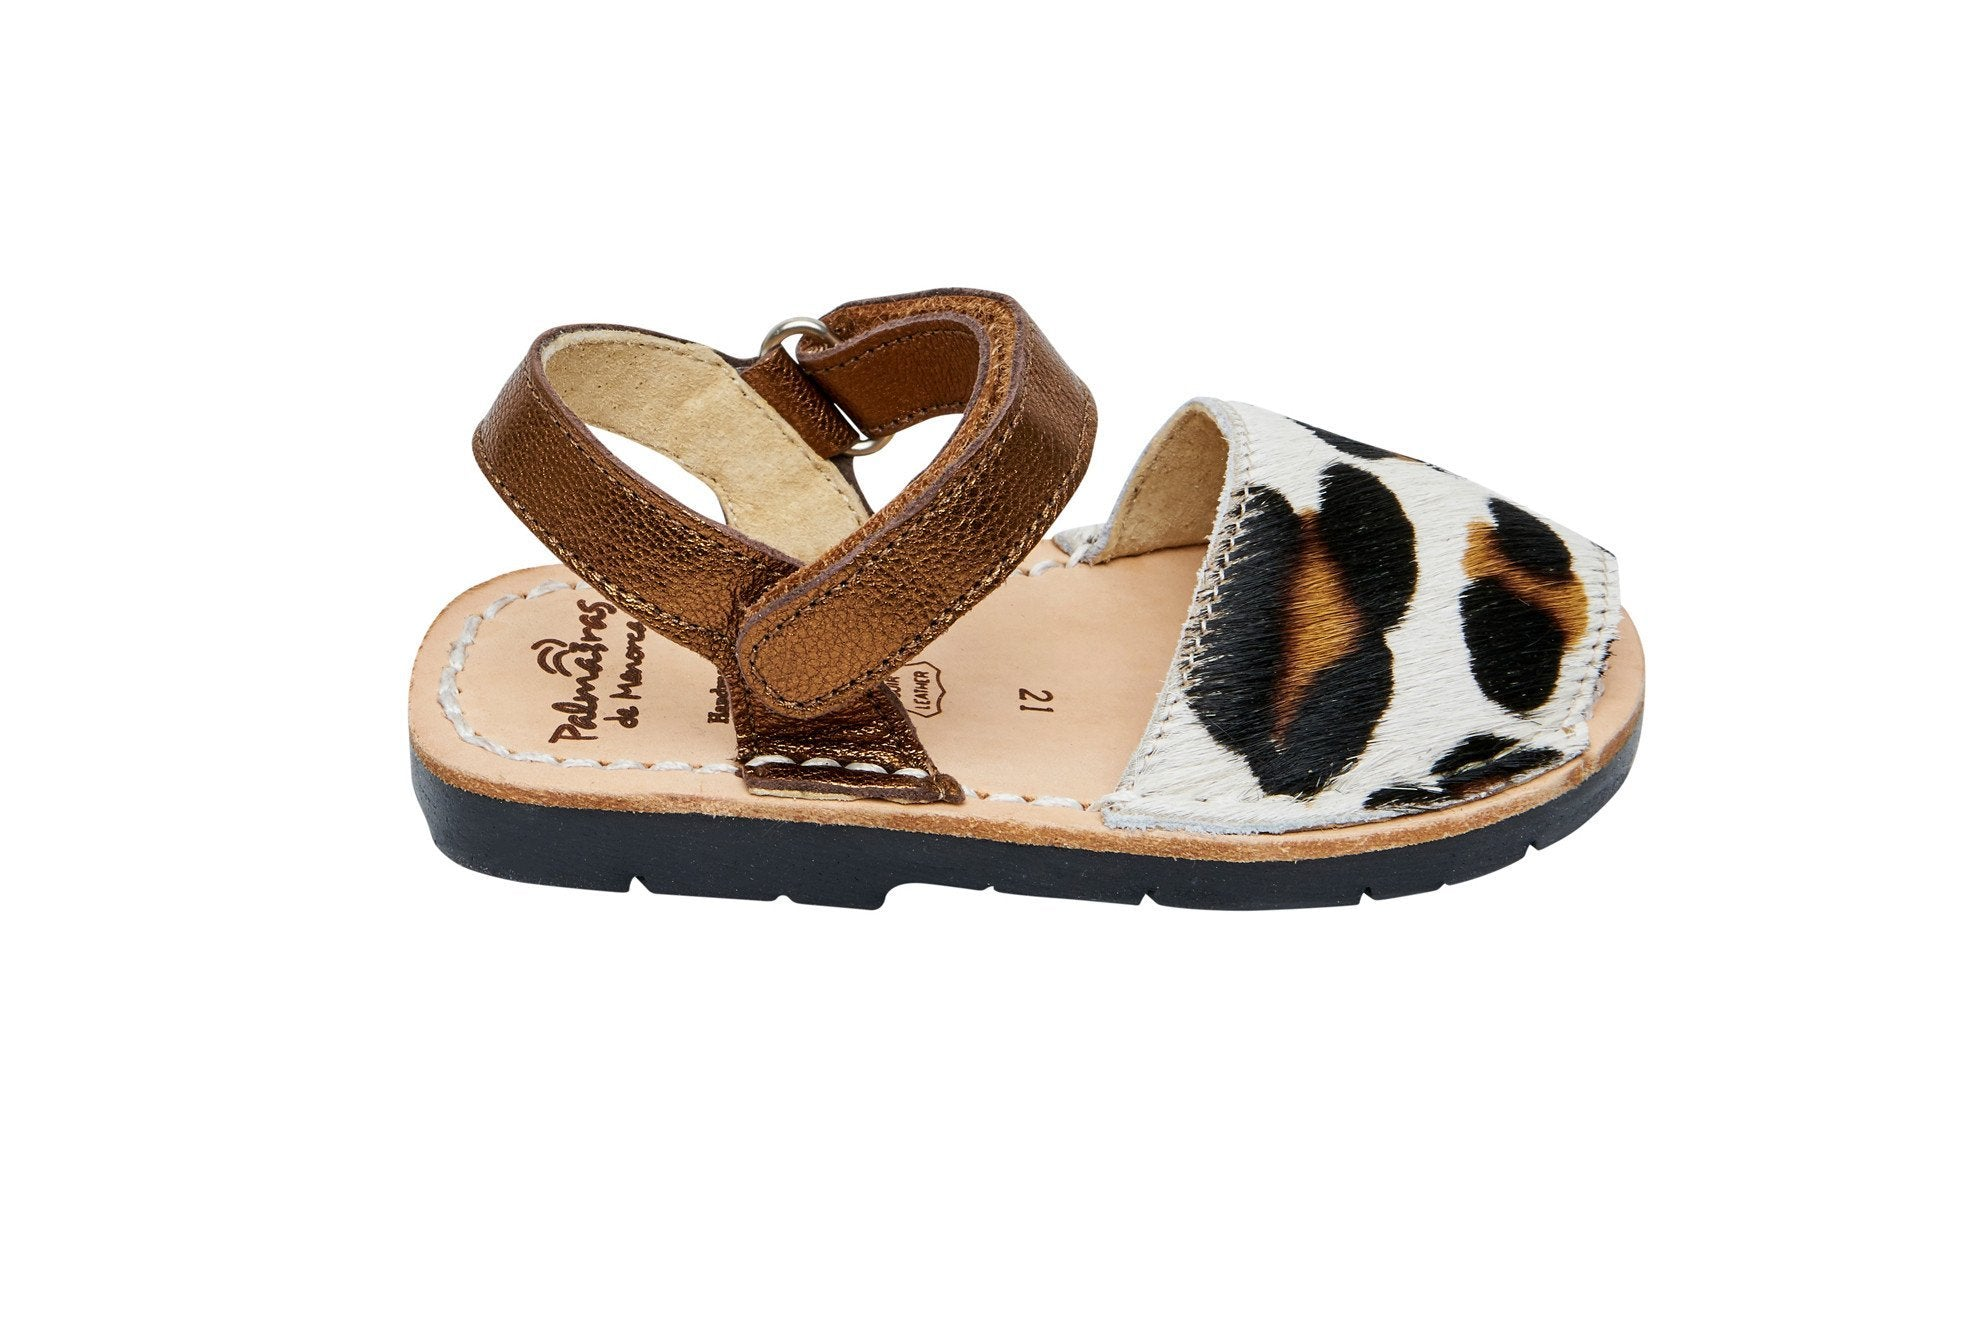 Palmaira Sandals Australia Hook & Loop - Shira Bronce